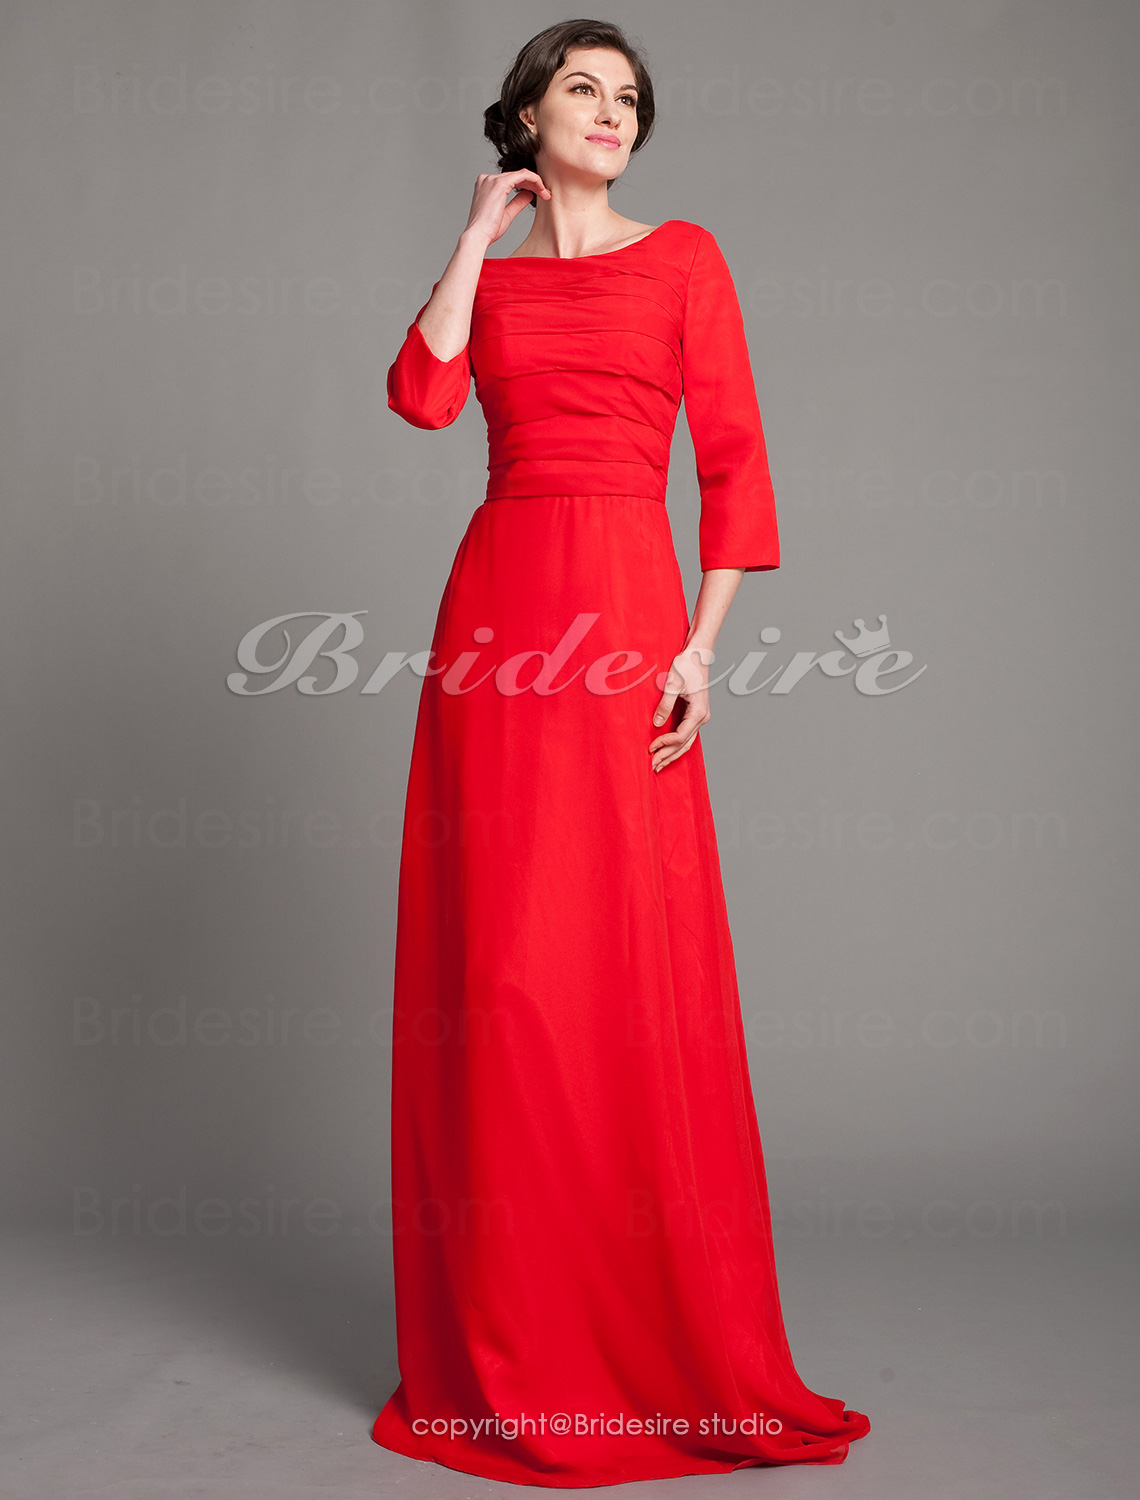 Sheath/Column Chiffon Floor-length Bateau Mother of the Bride Dress